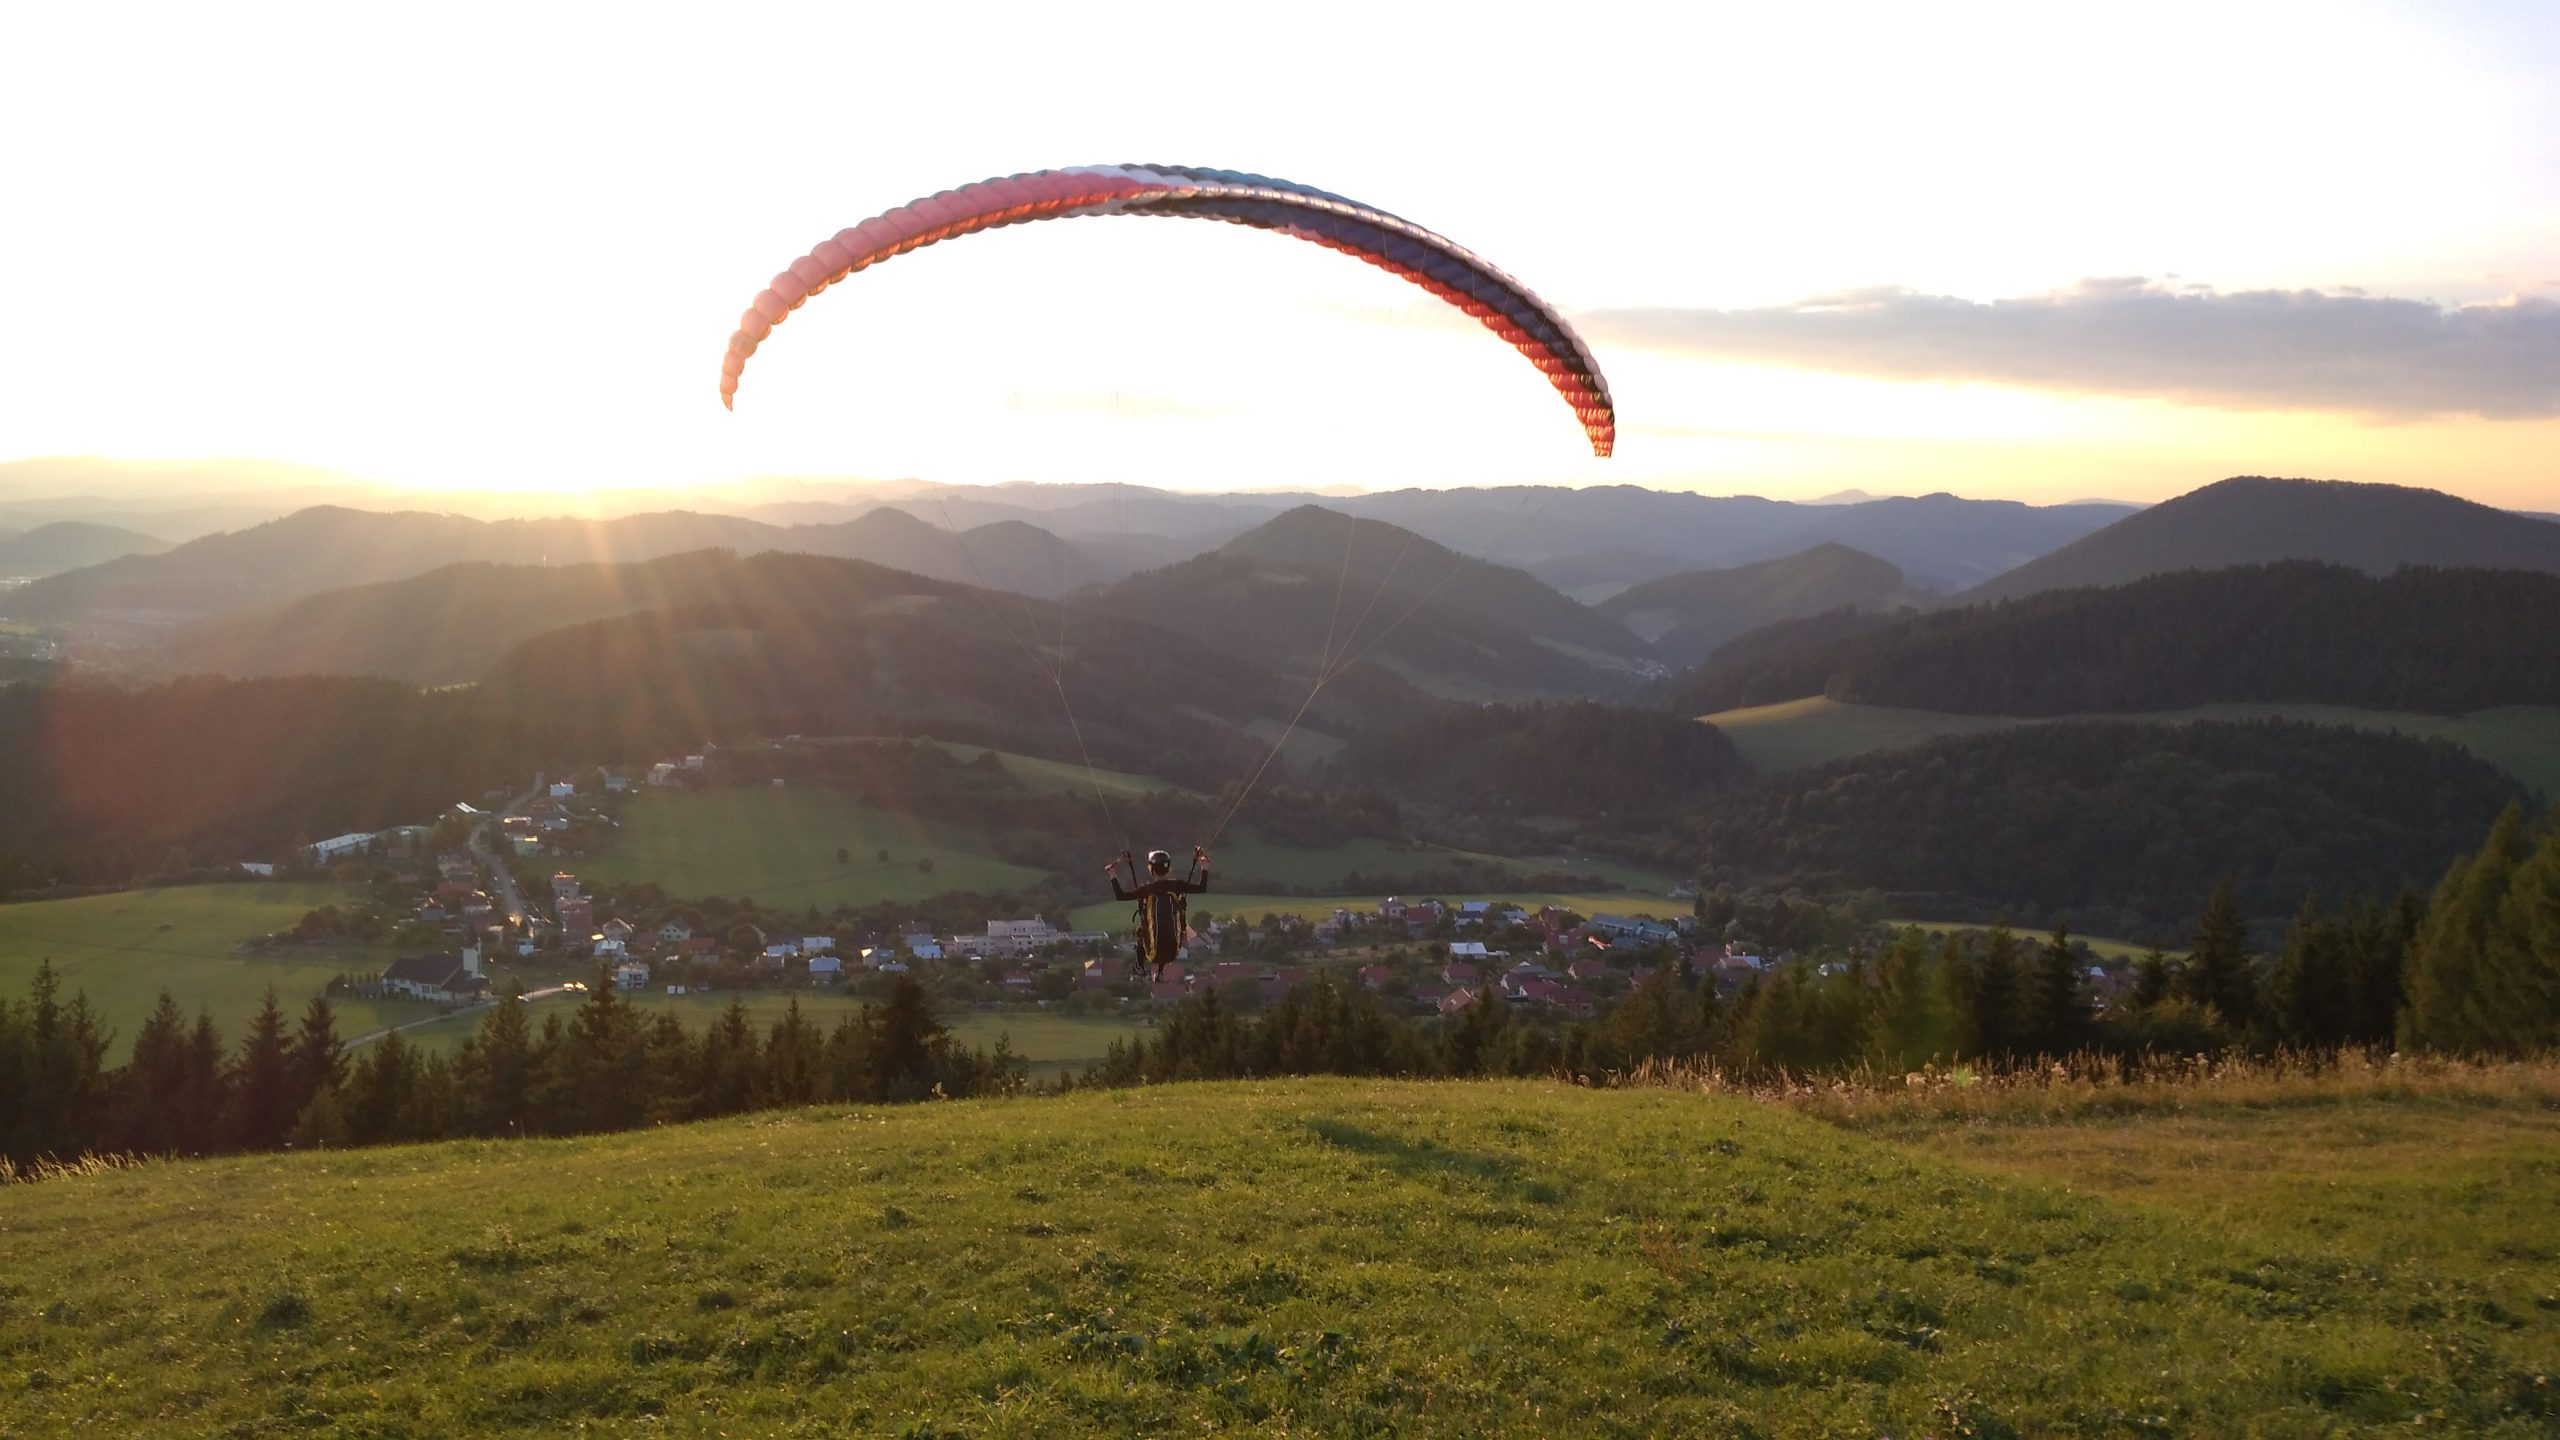 Paragliding course by Huw Humphreys's eyes – Flying the Nest